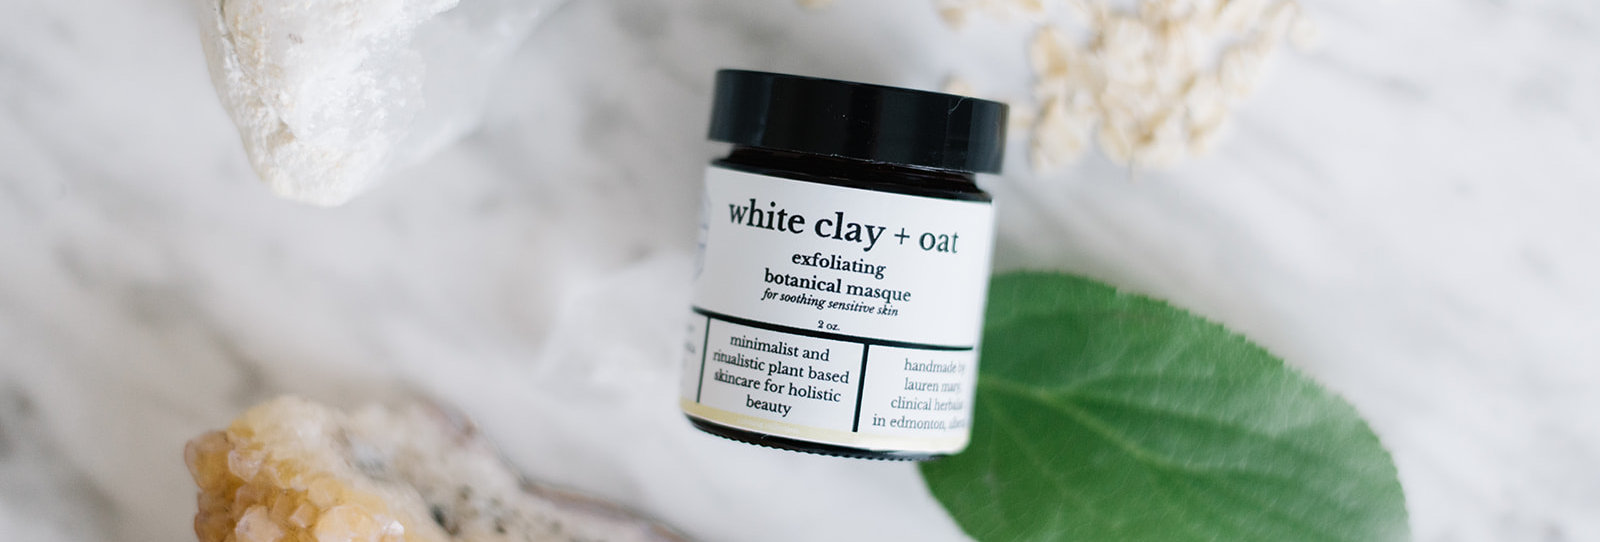 White Clay + Oat Exfoliating Masque